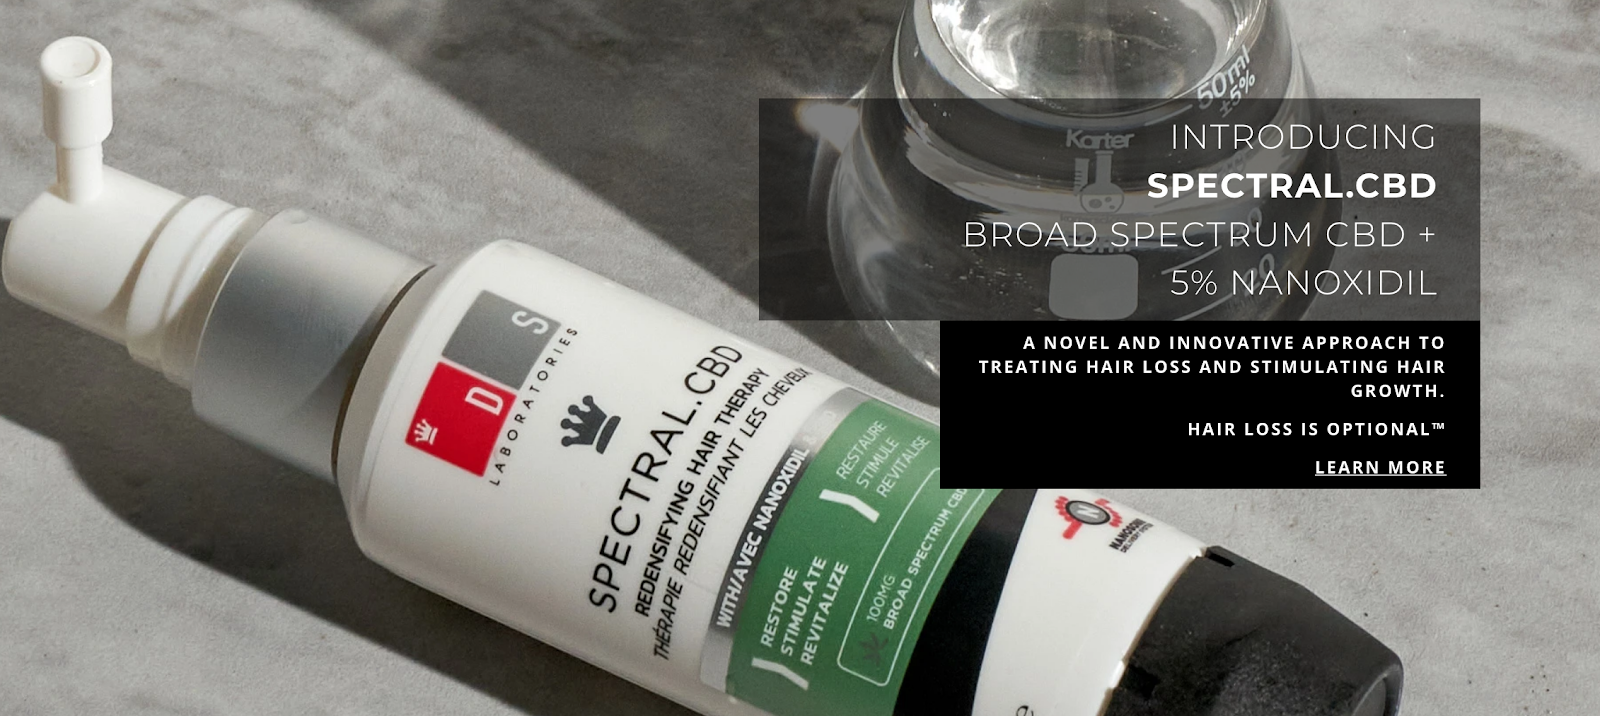 Spectral.CBD by DS Laboratories to treat hair loss and stimulate hair growth